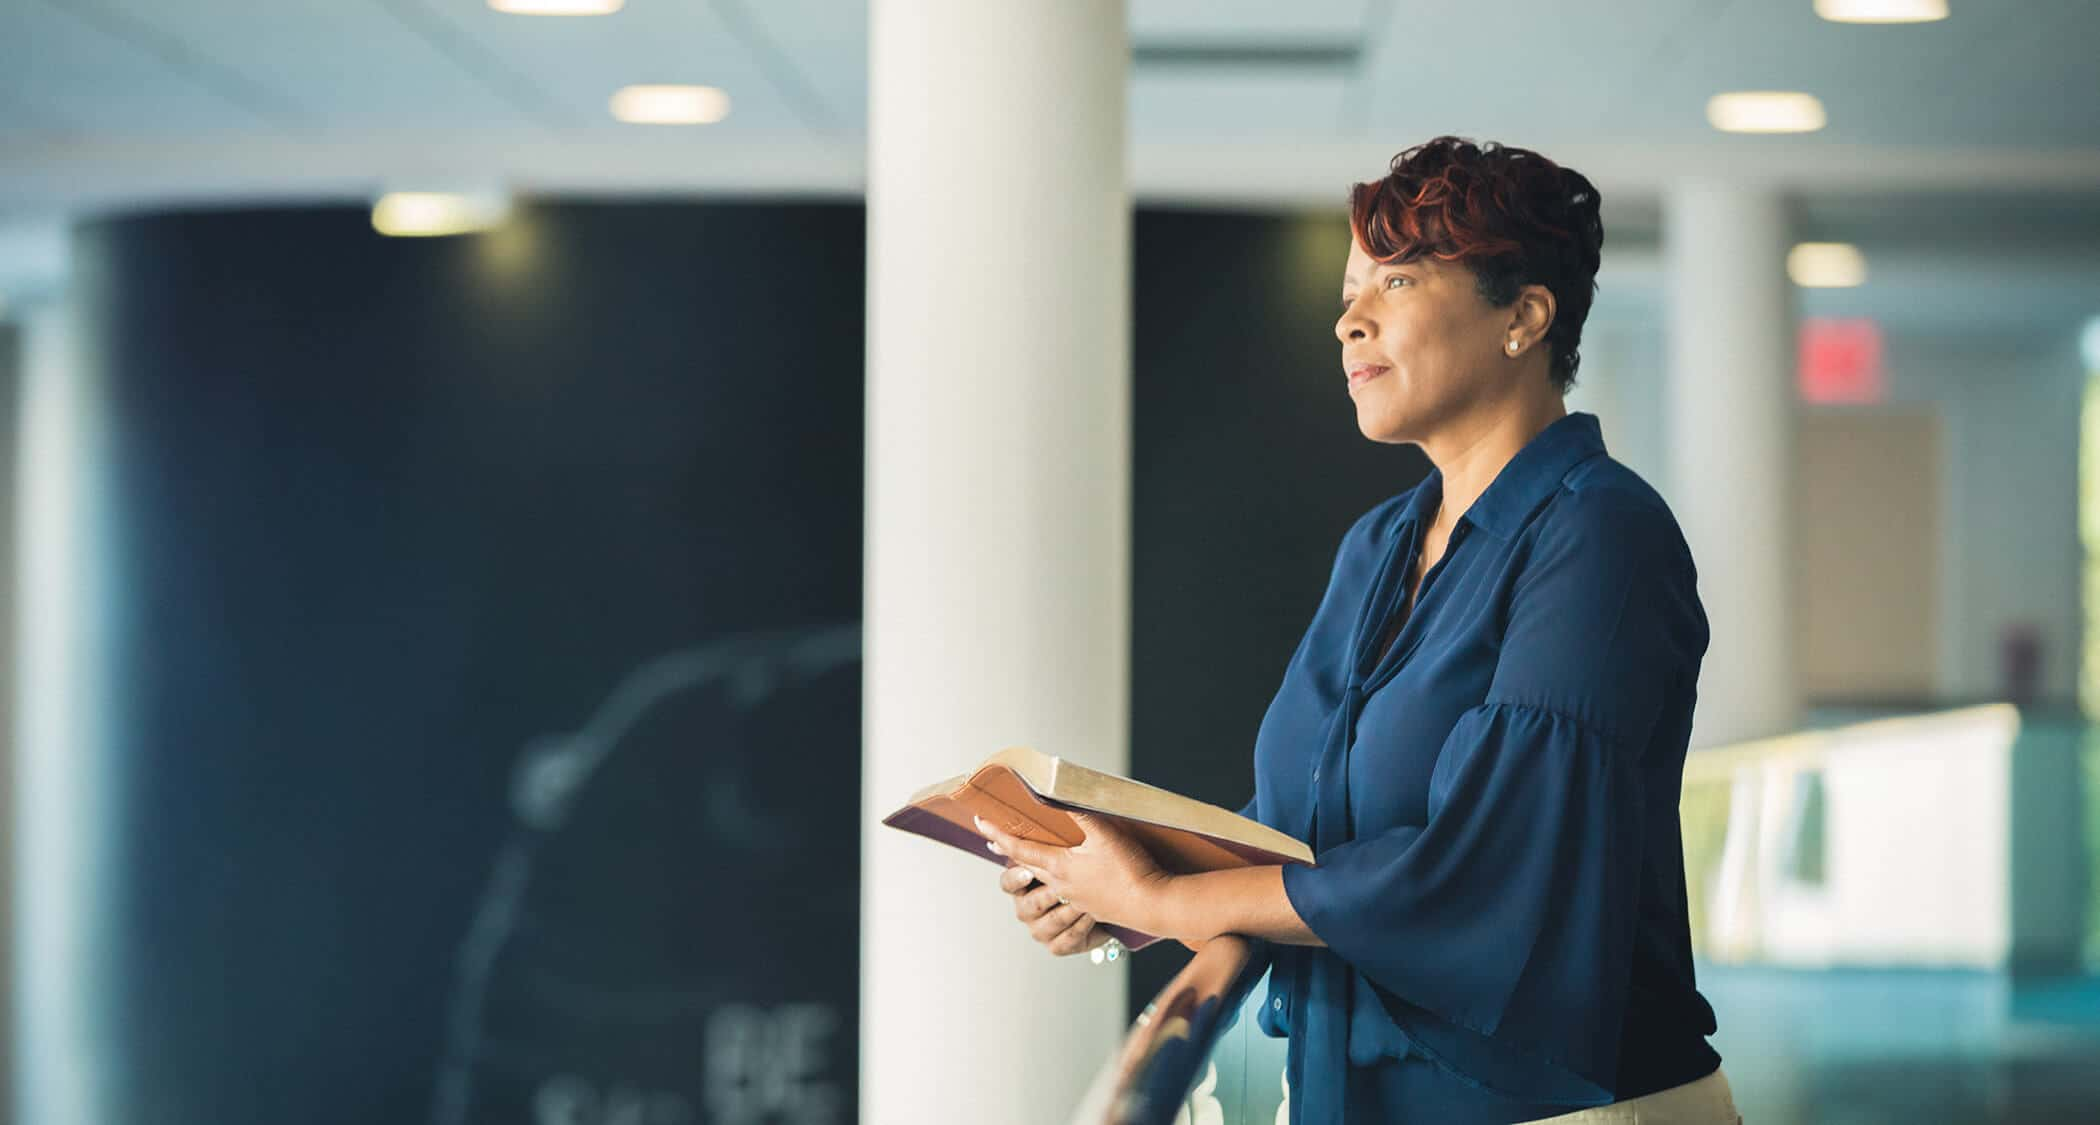 A lady with an open book: Regent University's School of Divinity offers an MDiv degree program.